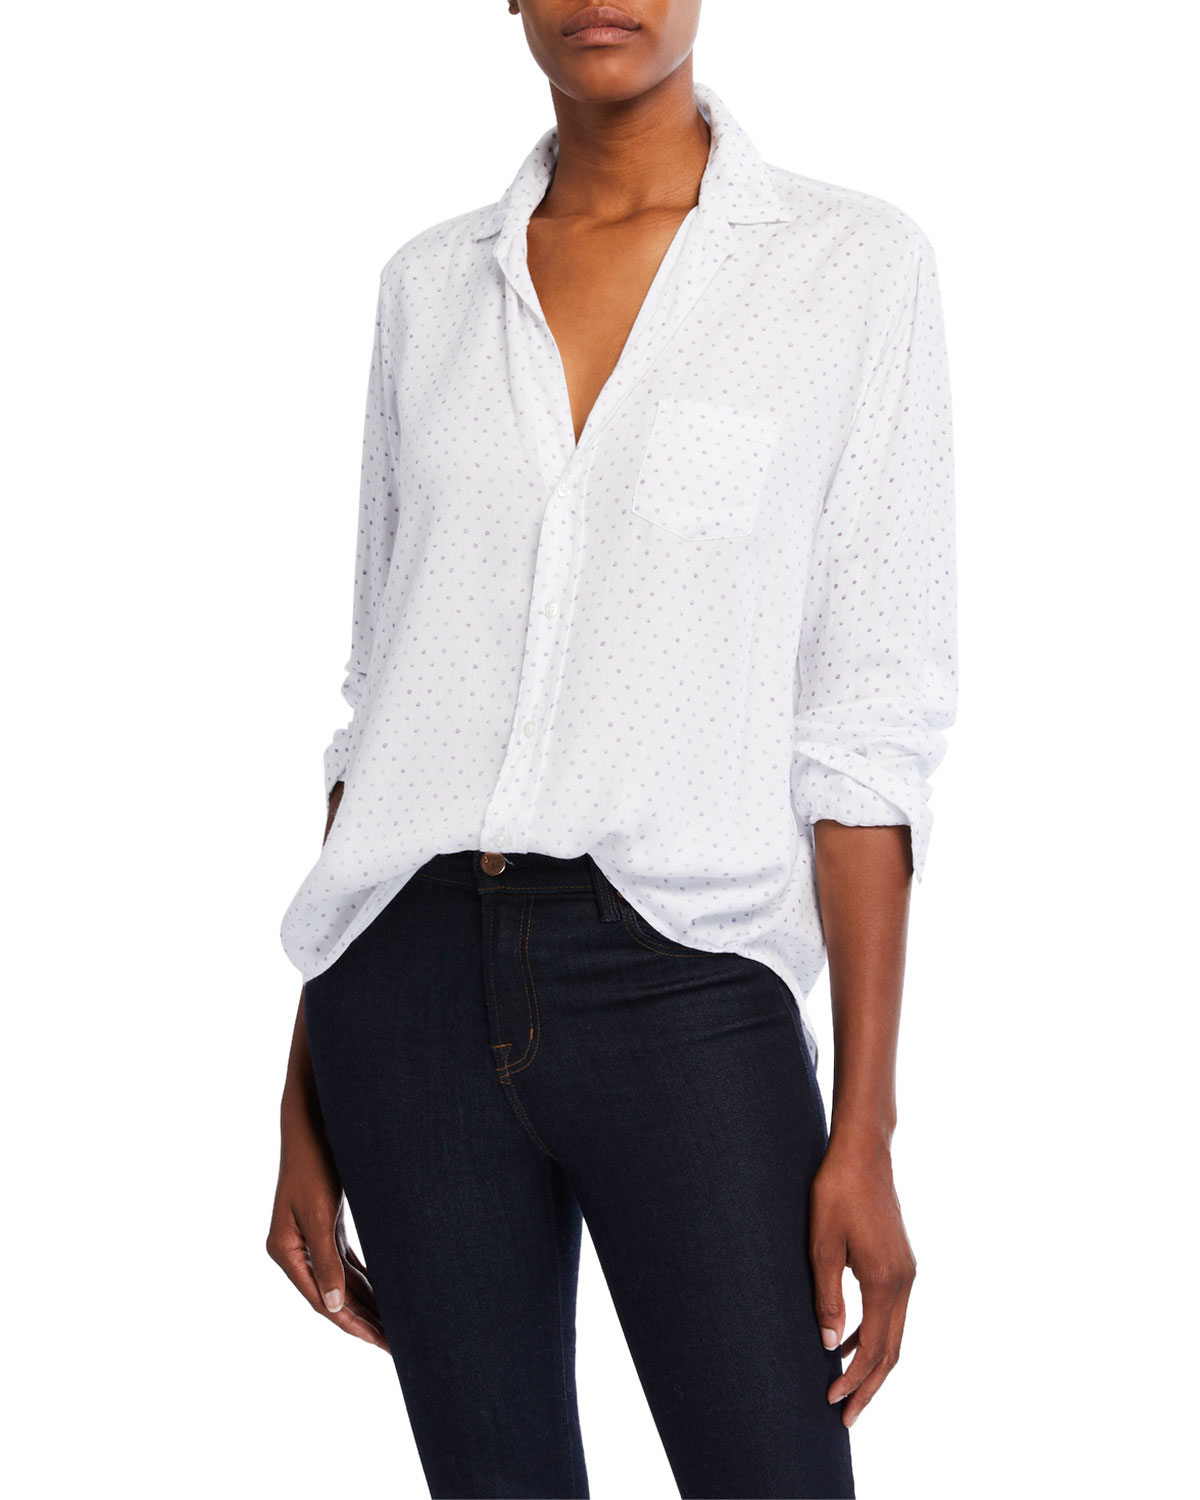 Frank & Eileen Shirts EILEEN POLKA-DOT MODAL LONG-SLEEVE BUTTON-DOWN SHIRT